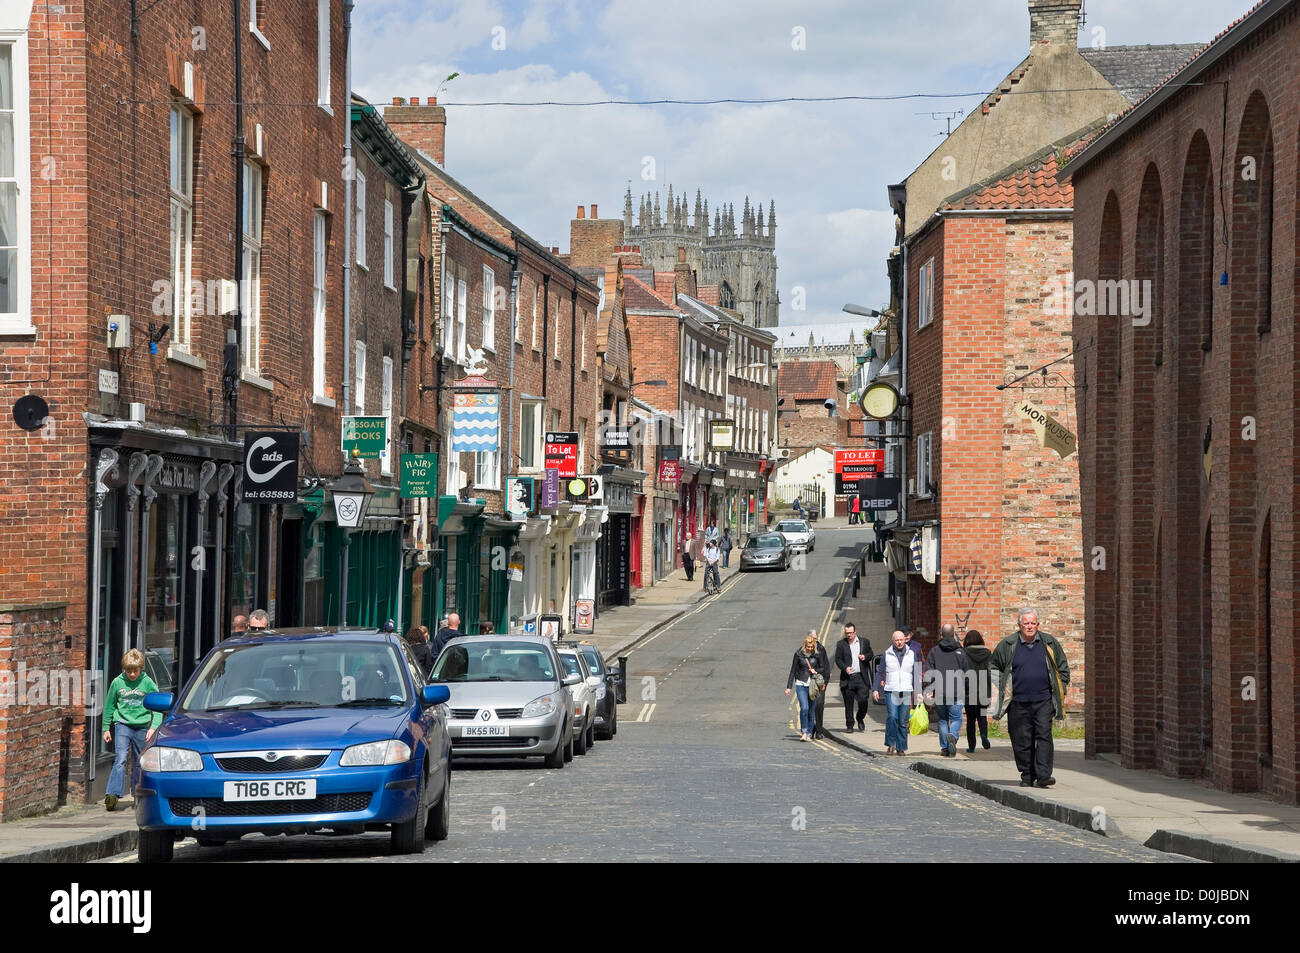 A view along Fossgate in York. - Stock Image